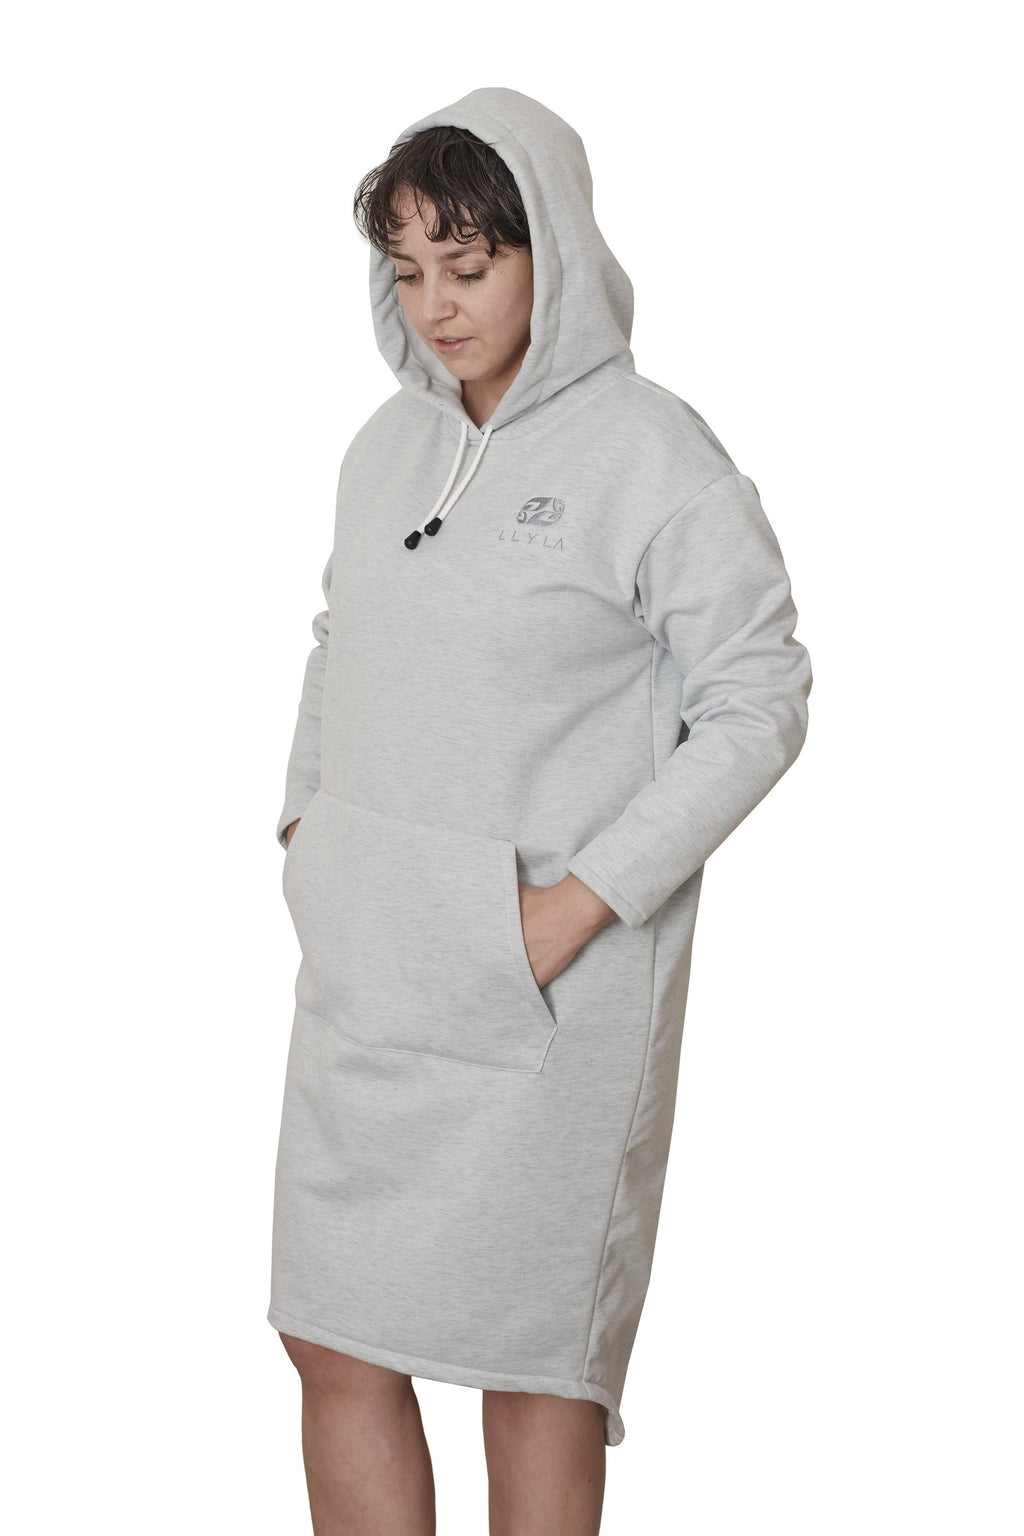 LLYLA Sweatshirt/Hoodie Dress